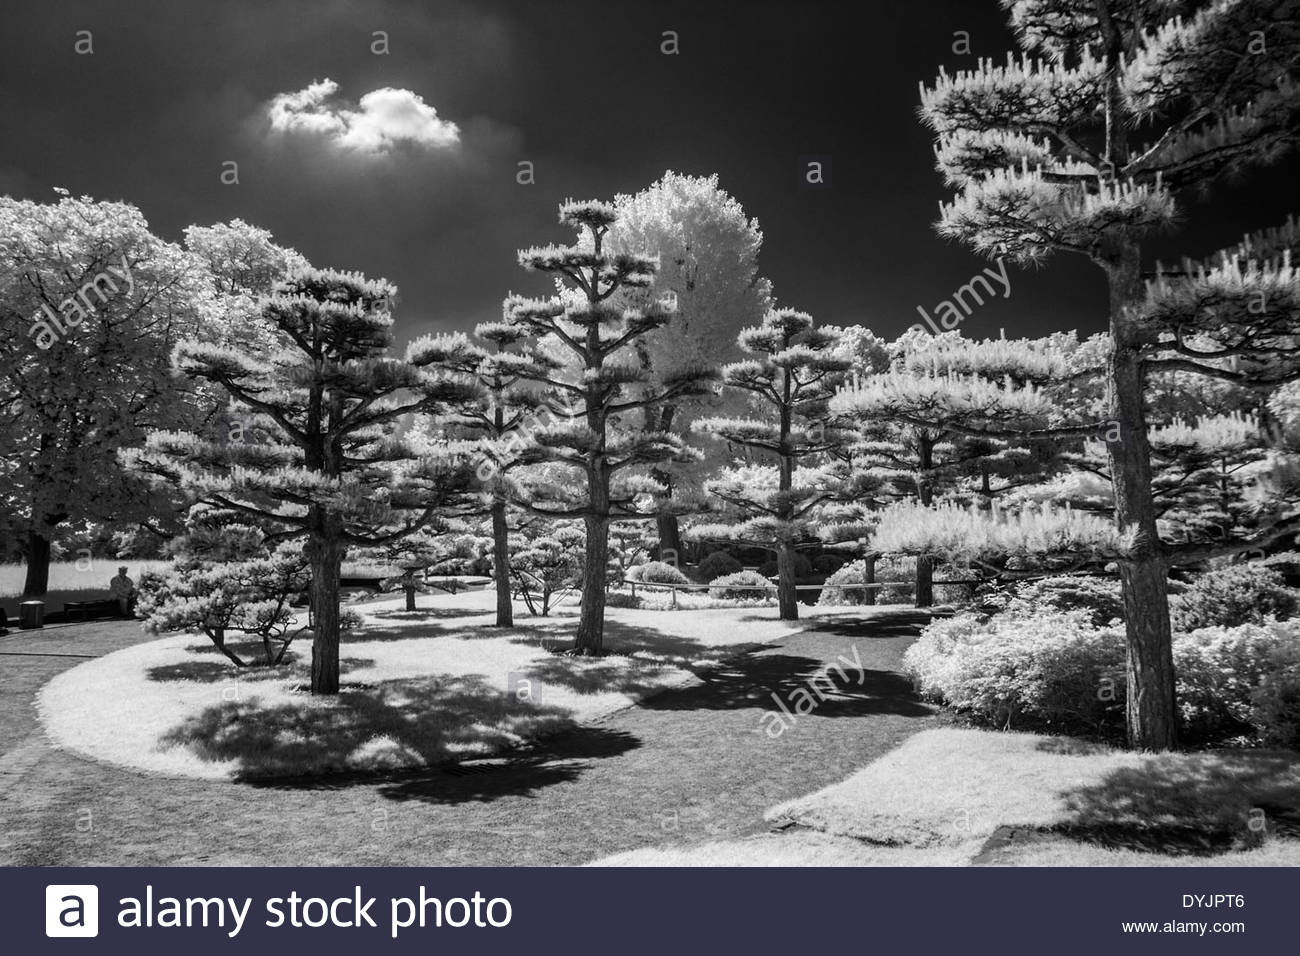 Japanese garden duesseldorf germany stock image